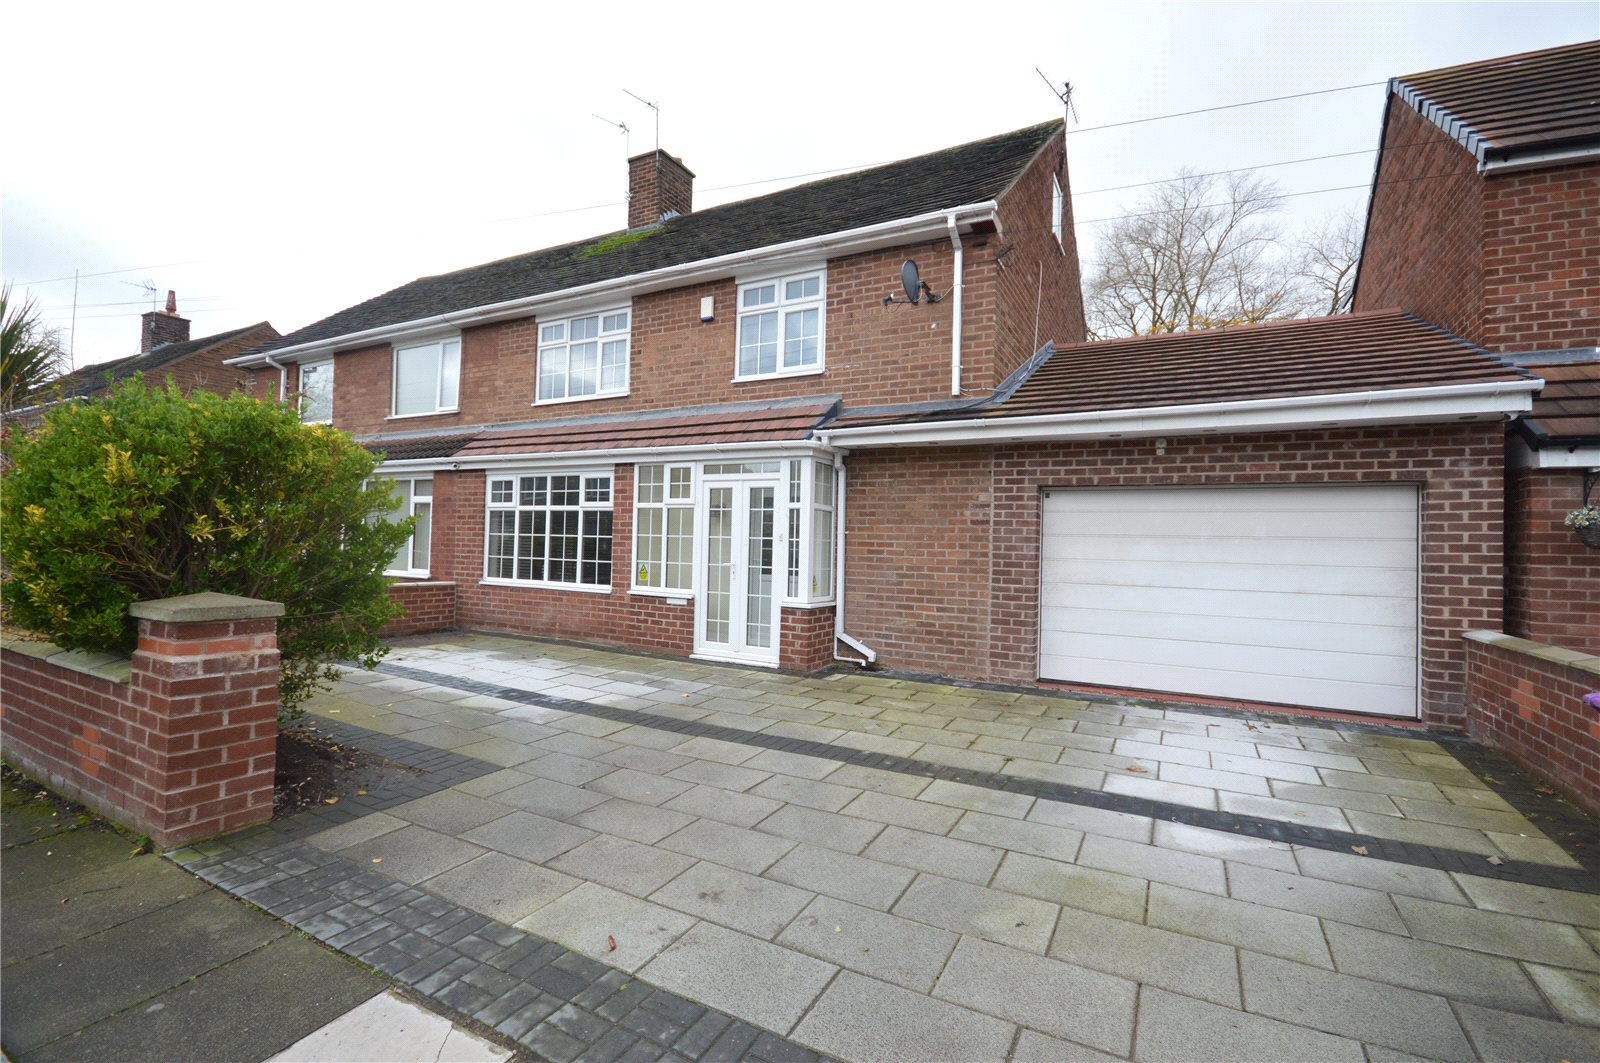 4 Bedrooms Semi Detached House for sale in Greenleigh Road, Mossley Hill, Liverpool, L18